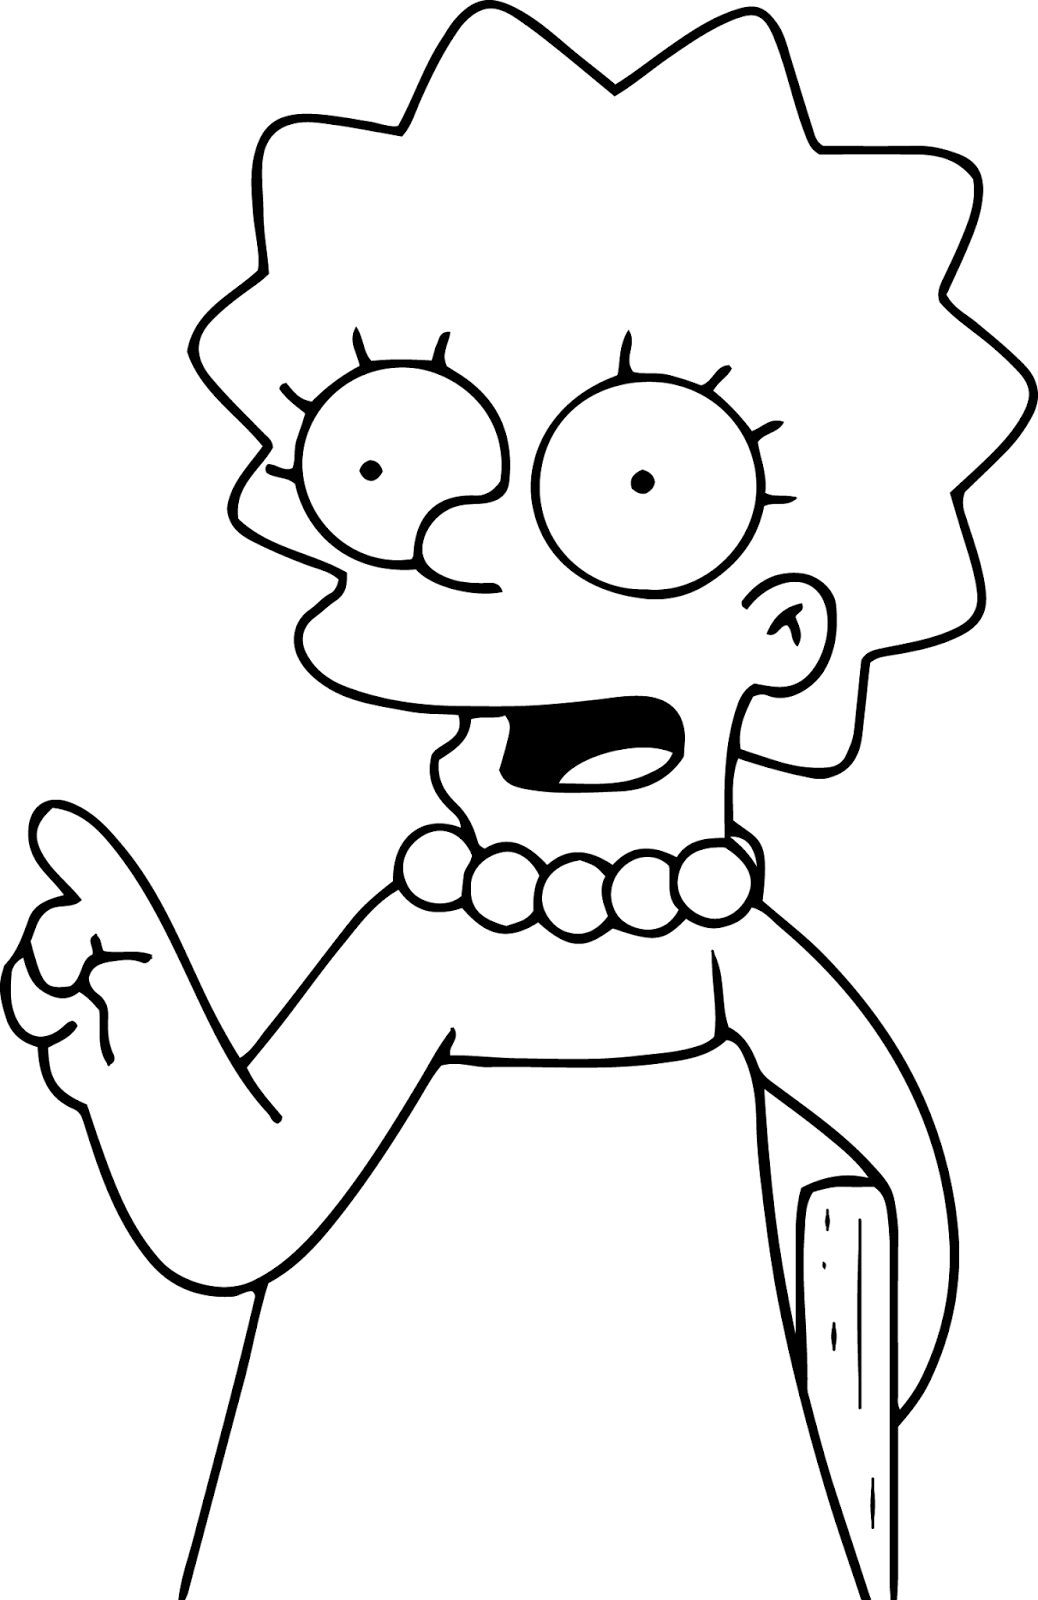 P ginas para colorear originales original coloring pages for Coloring pages simpsons